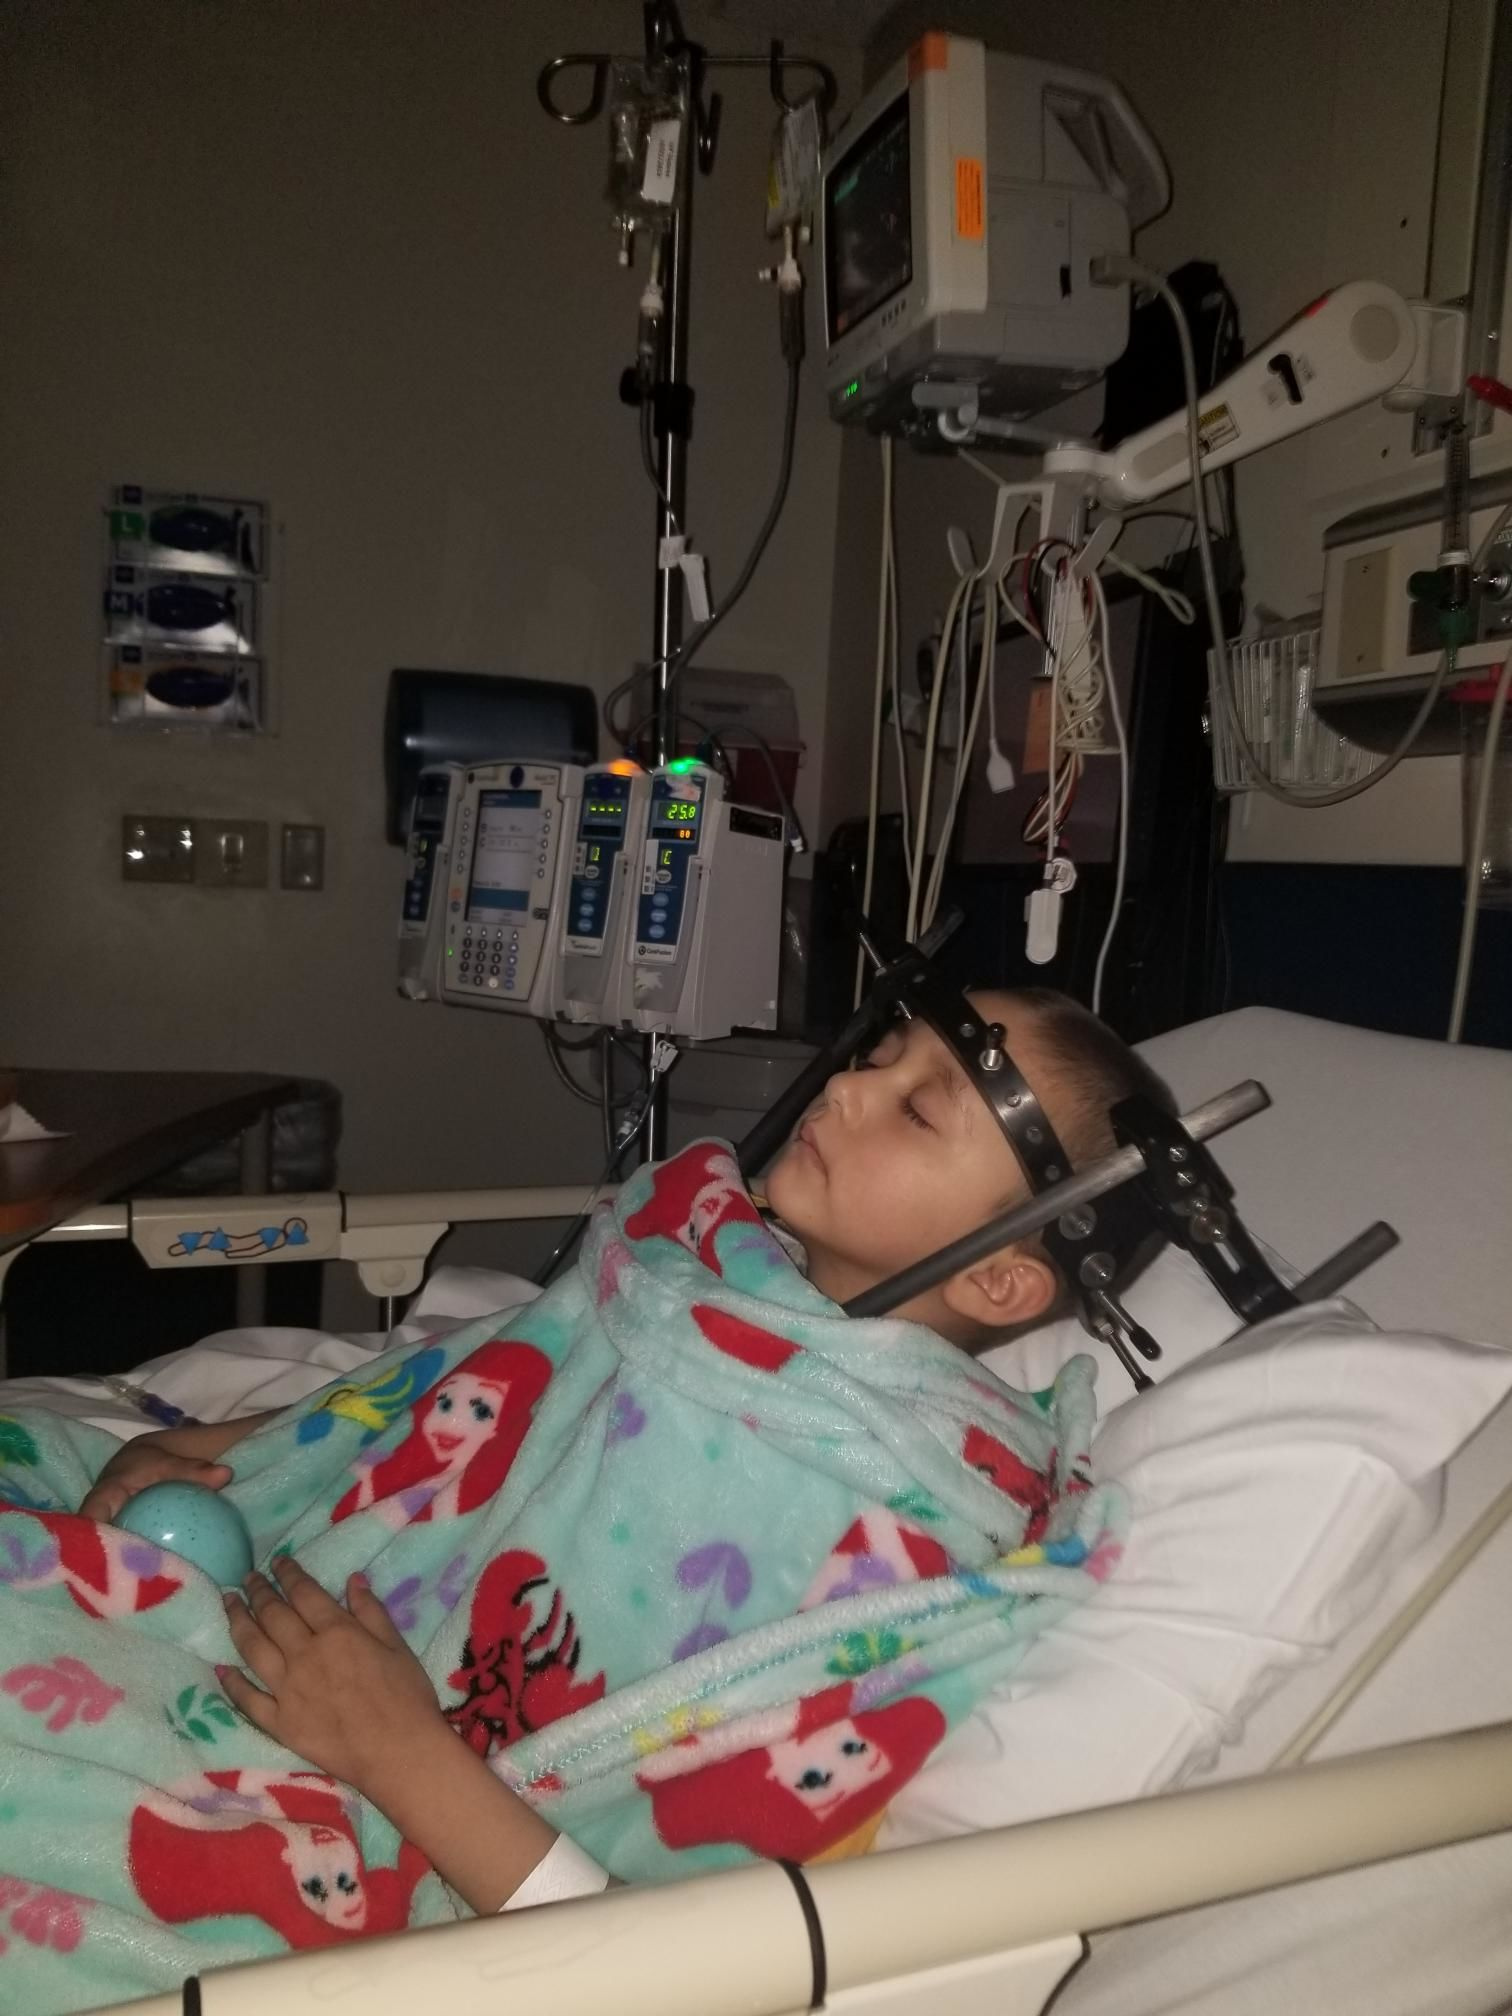 Alayna Rodriguez of Madera undergoing treatment at St. Jude Children's Research Hospital (Photo courtesy the Rodriguez family)